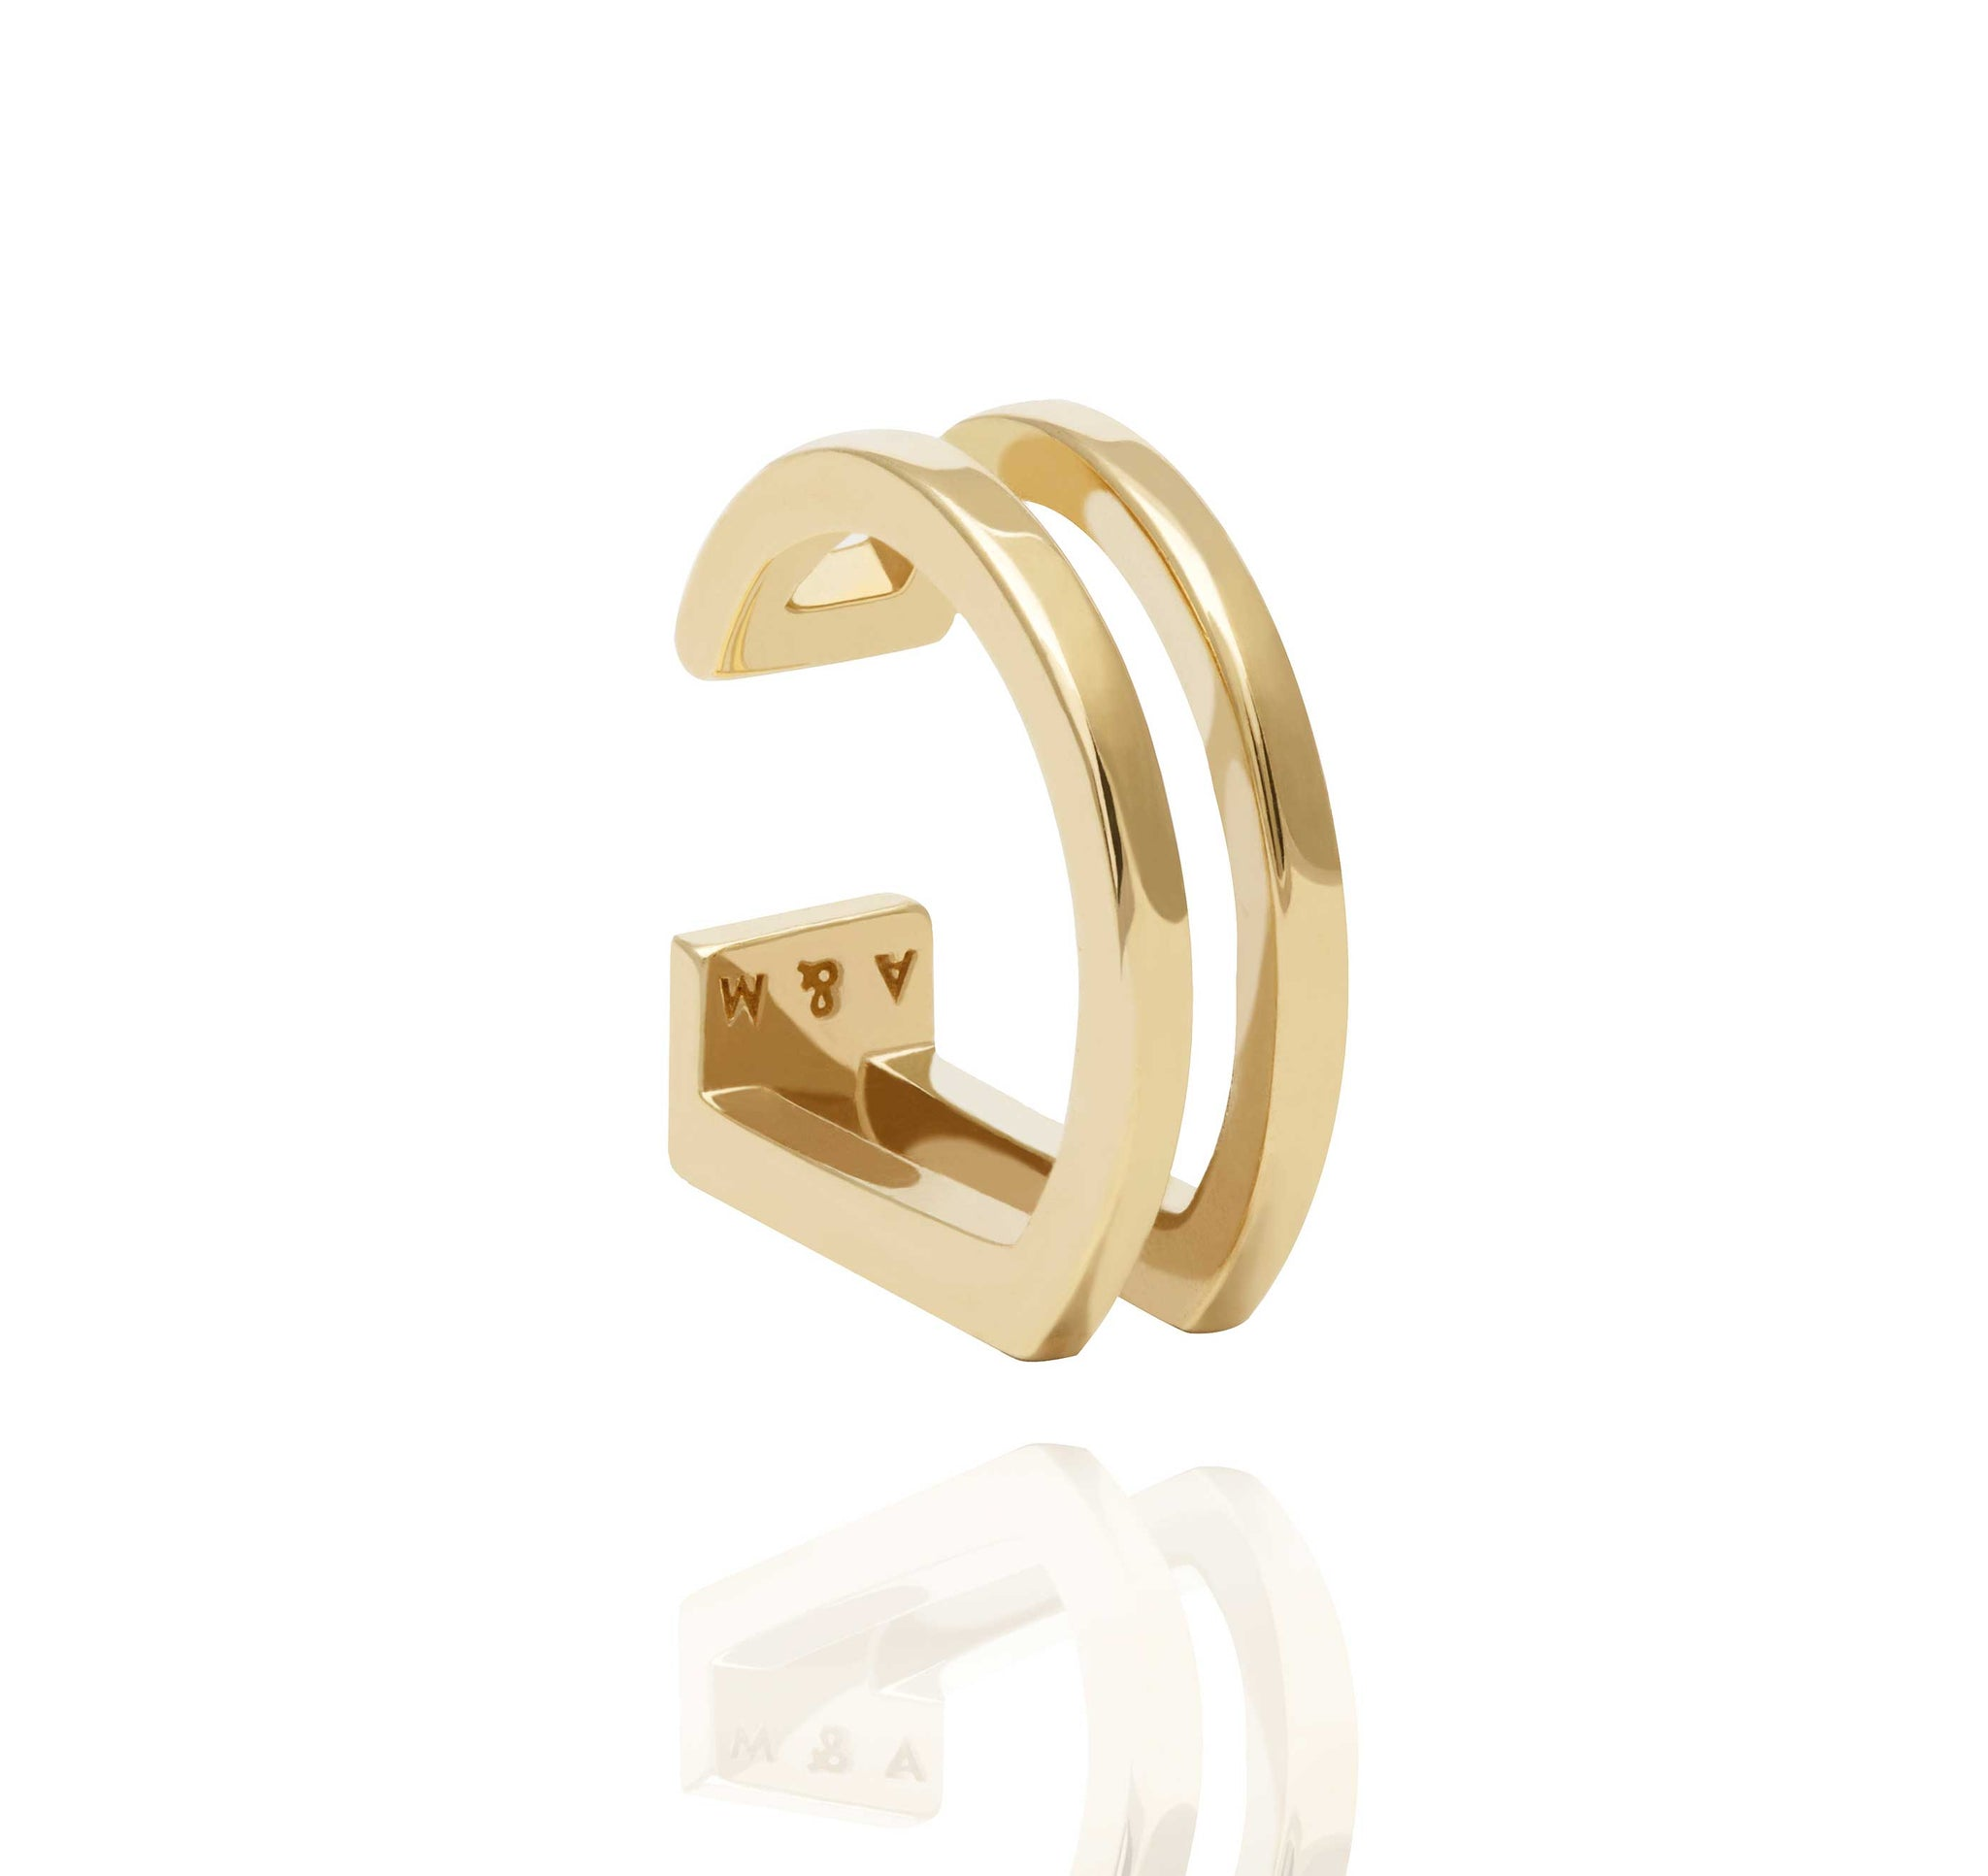 18k gold plated brass simple ear cuff with two curved bars  Edit alt text